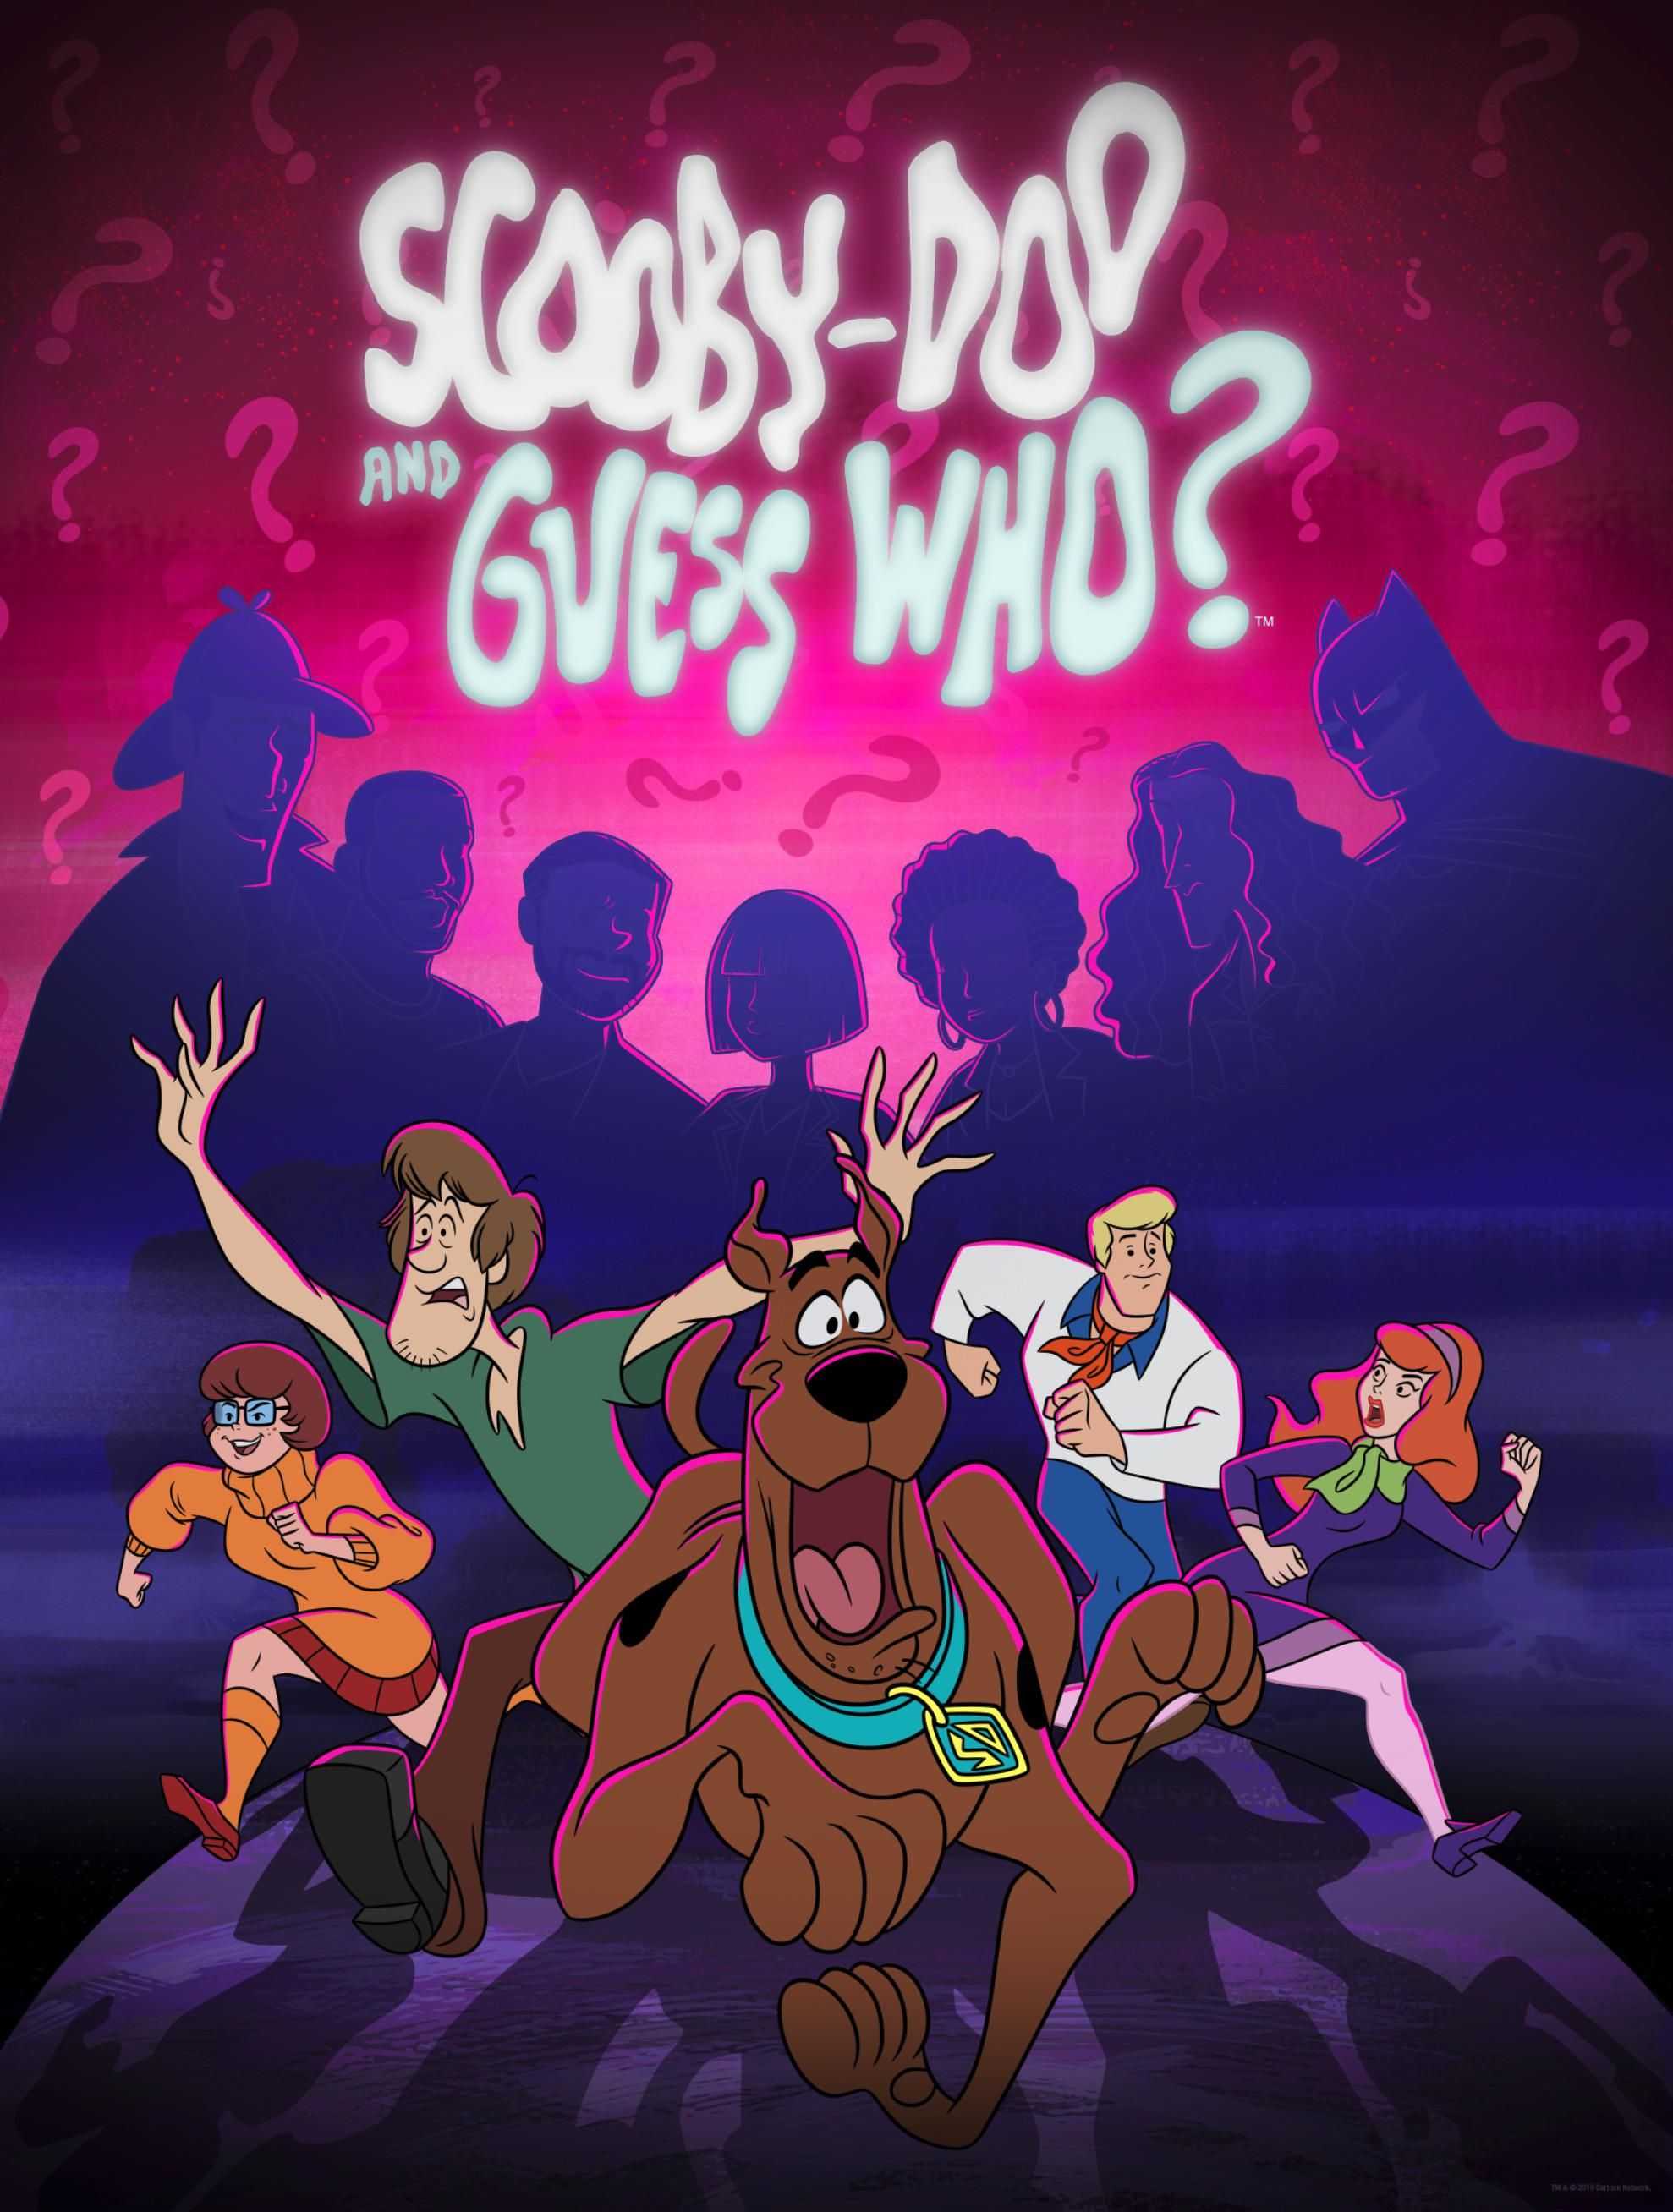 Scooby-Doo and Guess Who? - Season 4